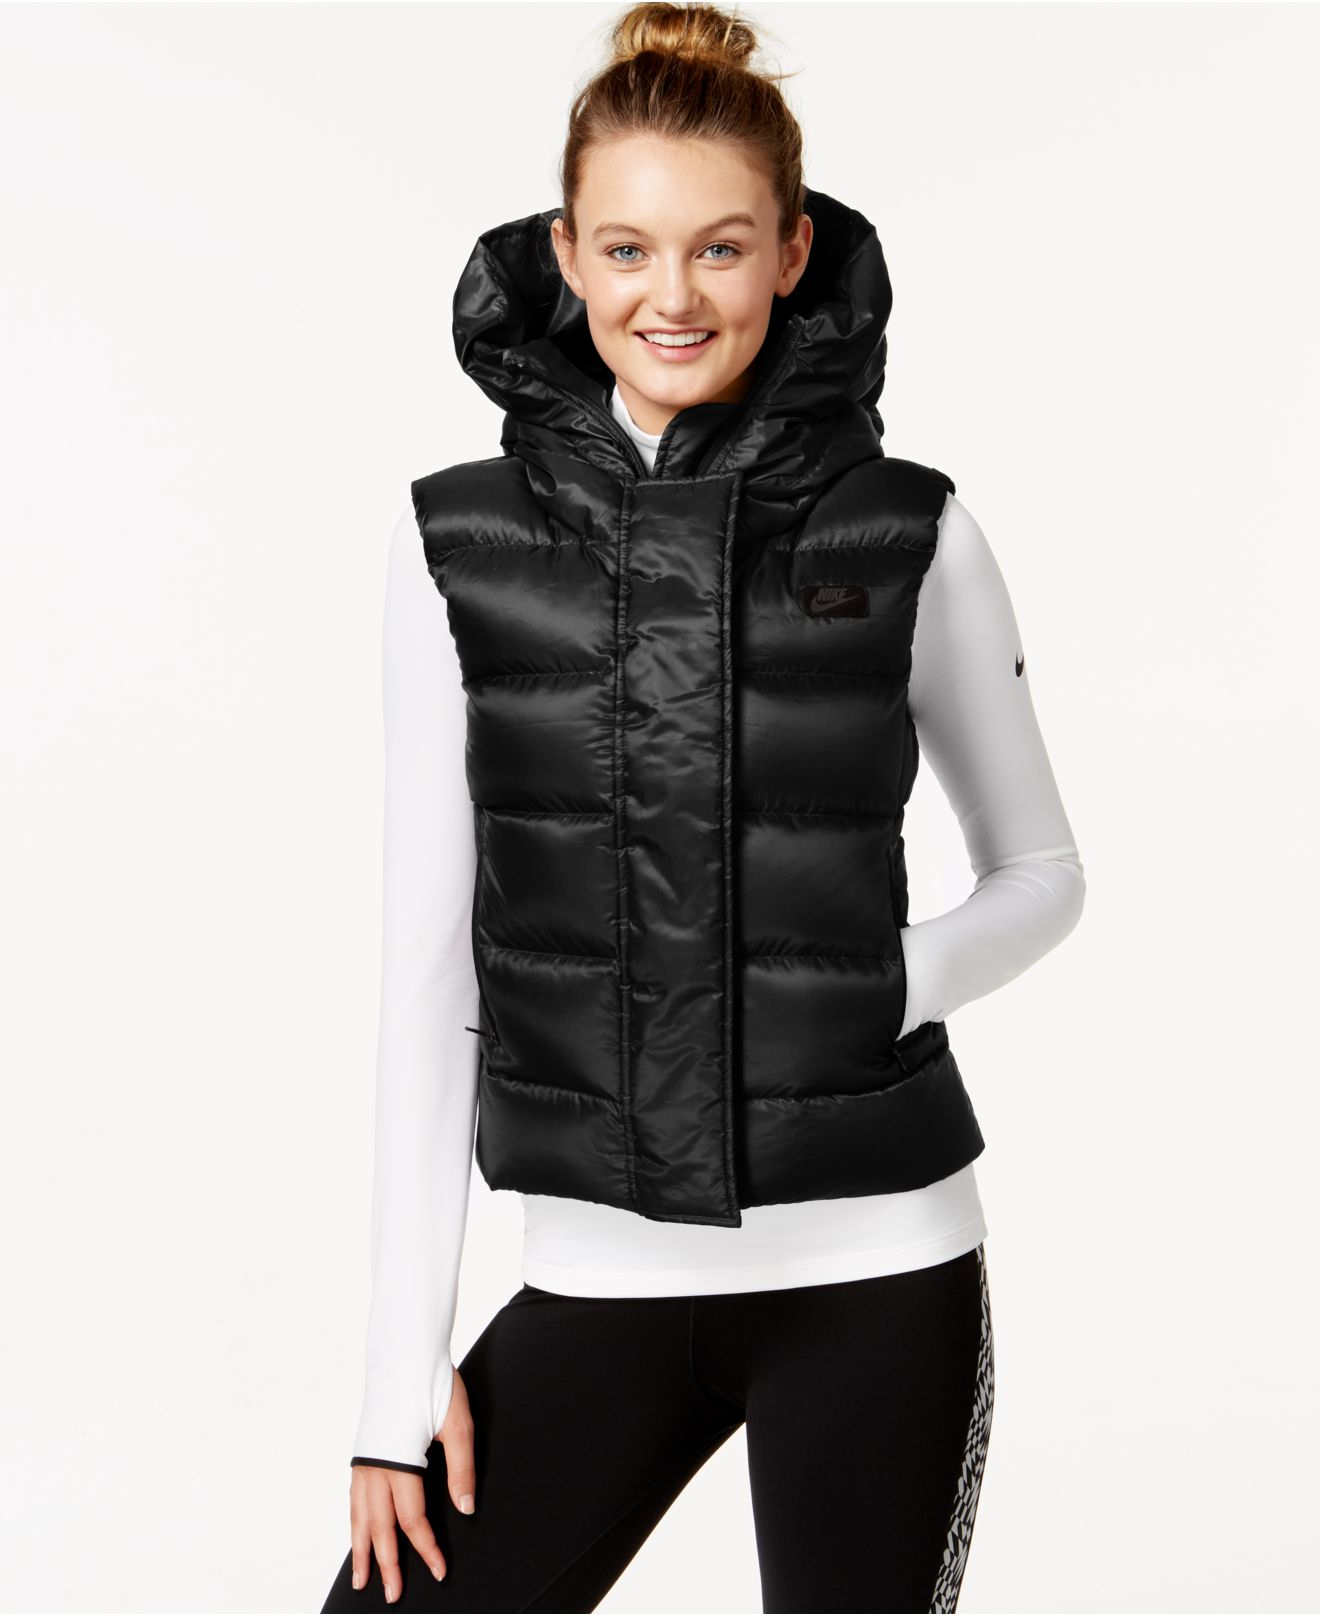 Lyst - Nike Uptown 550 Hooded Down Vest in Black 4bf1ec248